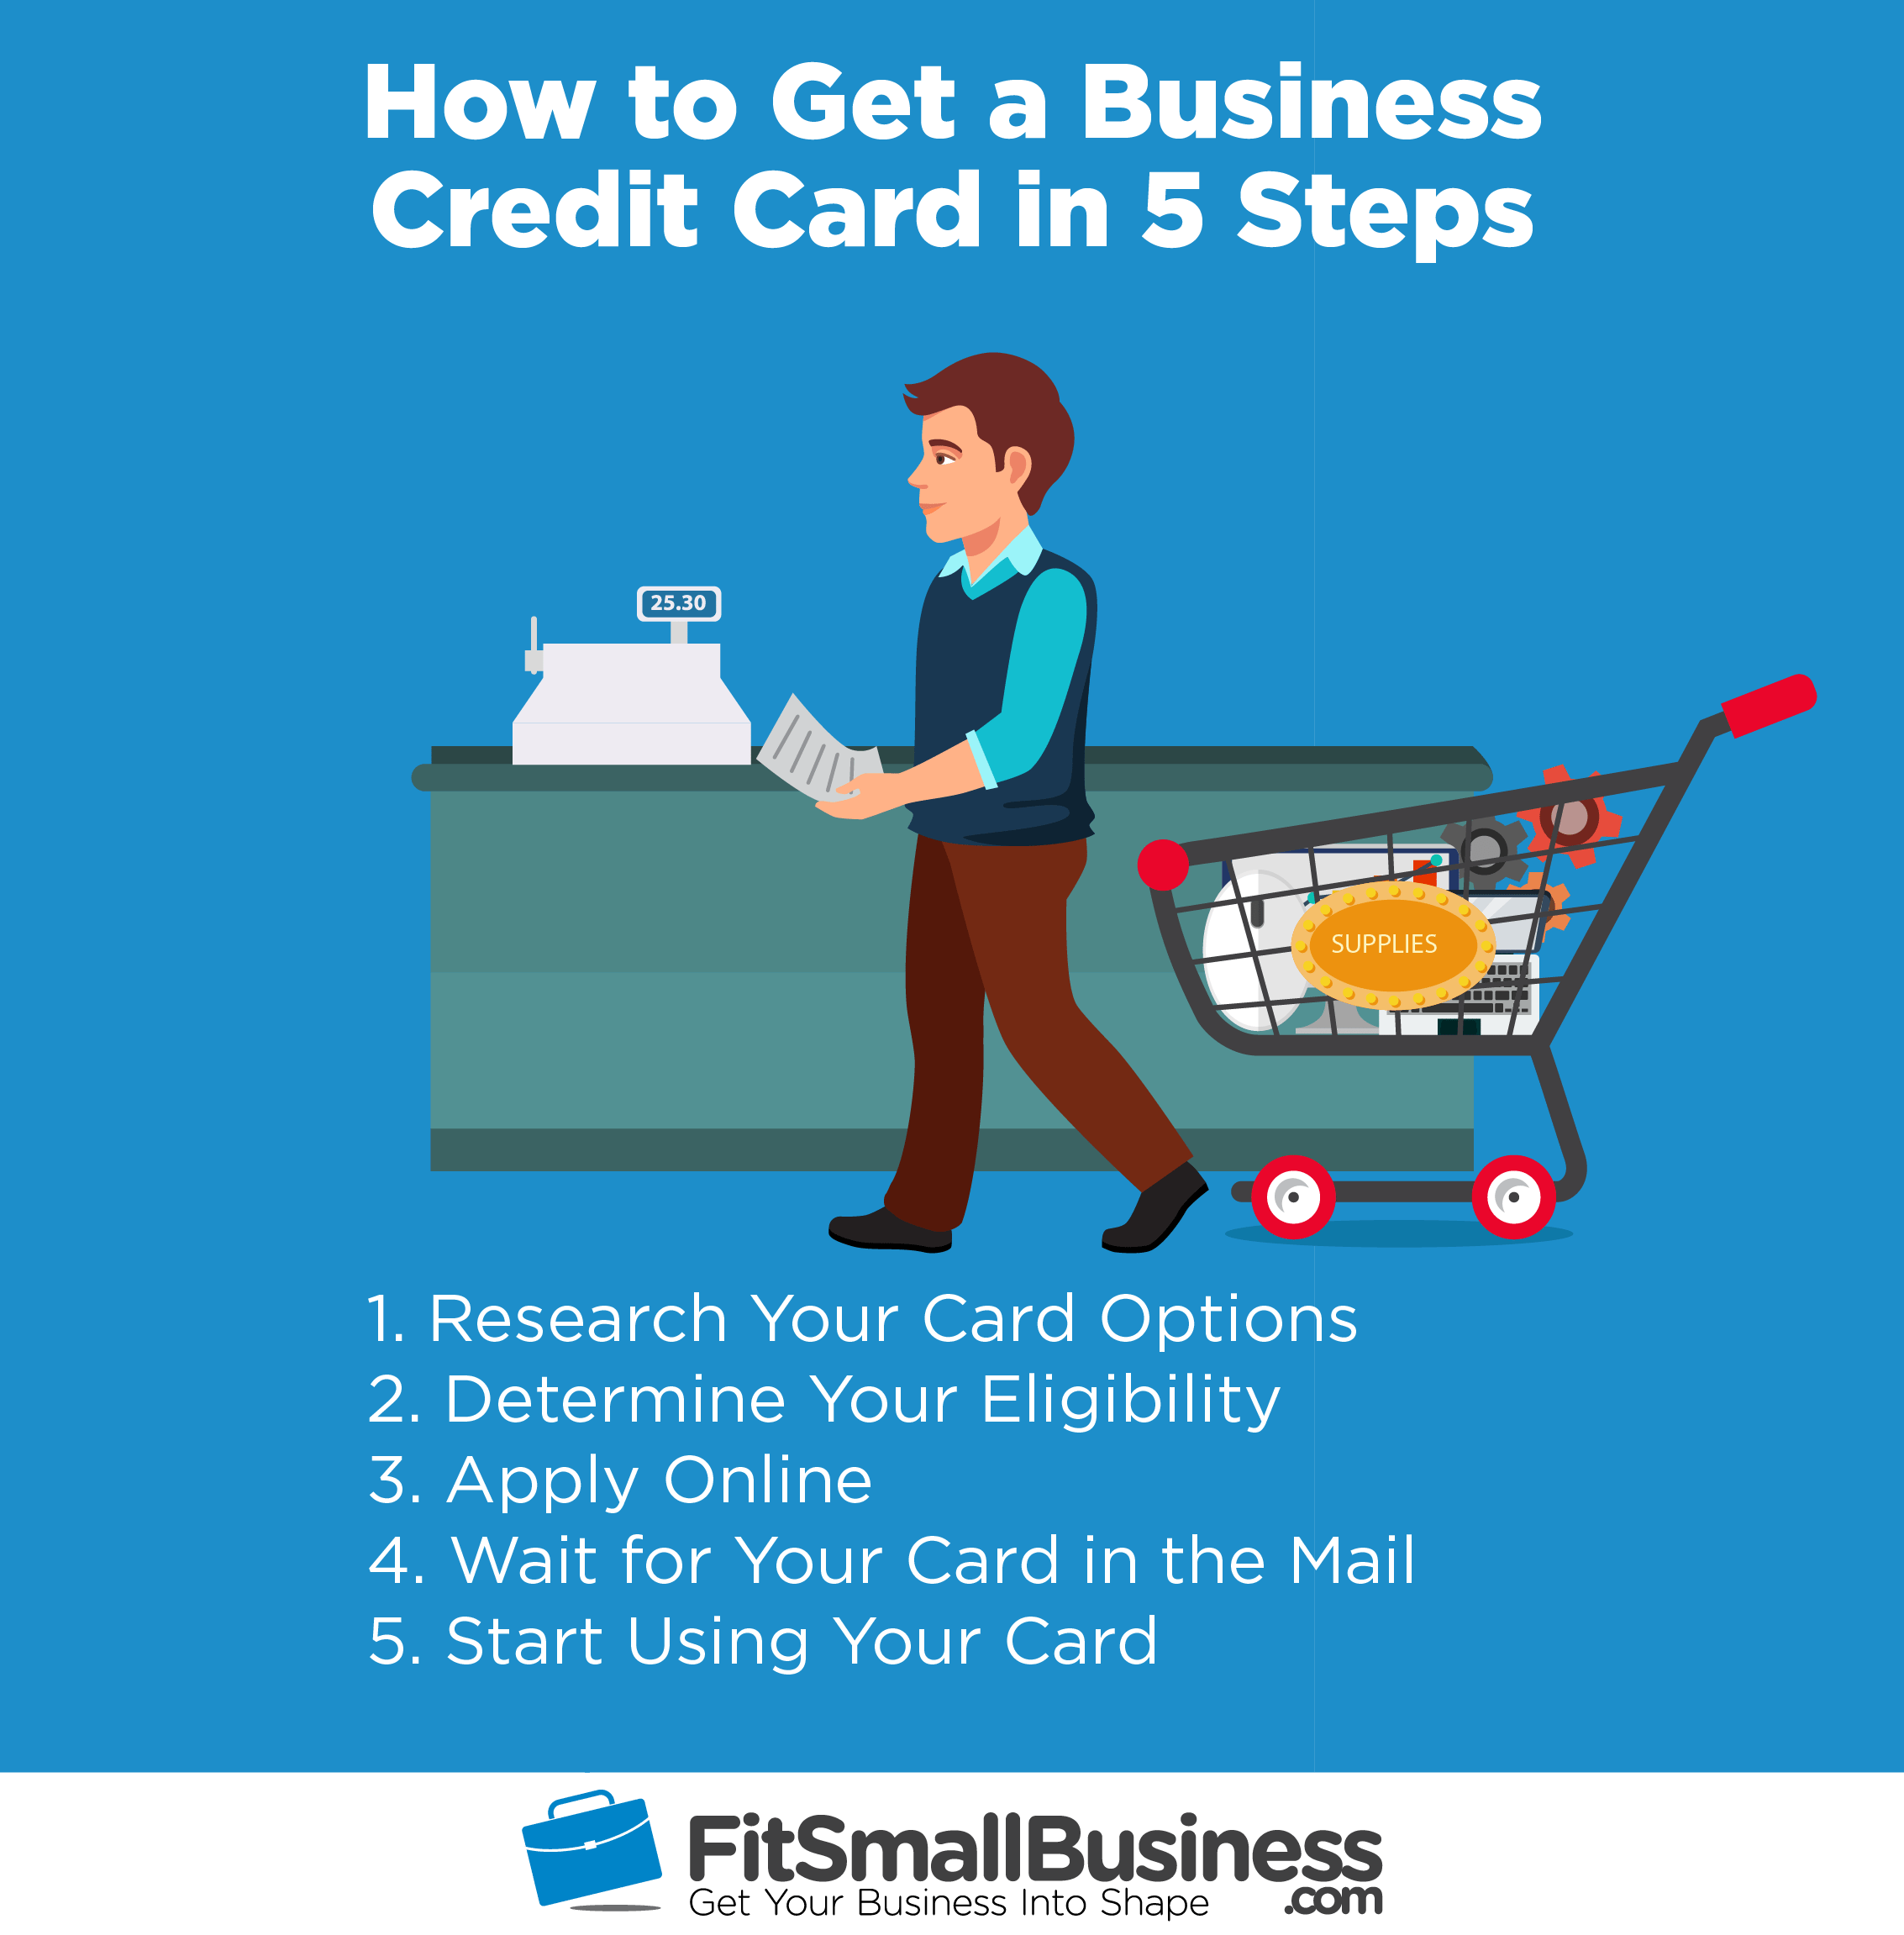 How to Get a Business Credit Card in 5 Steps